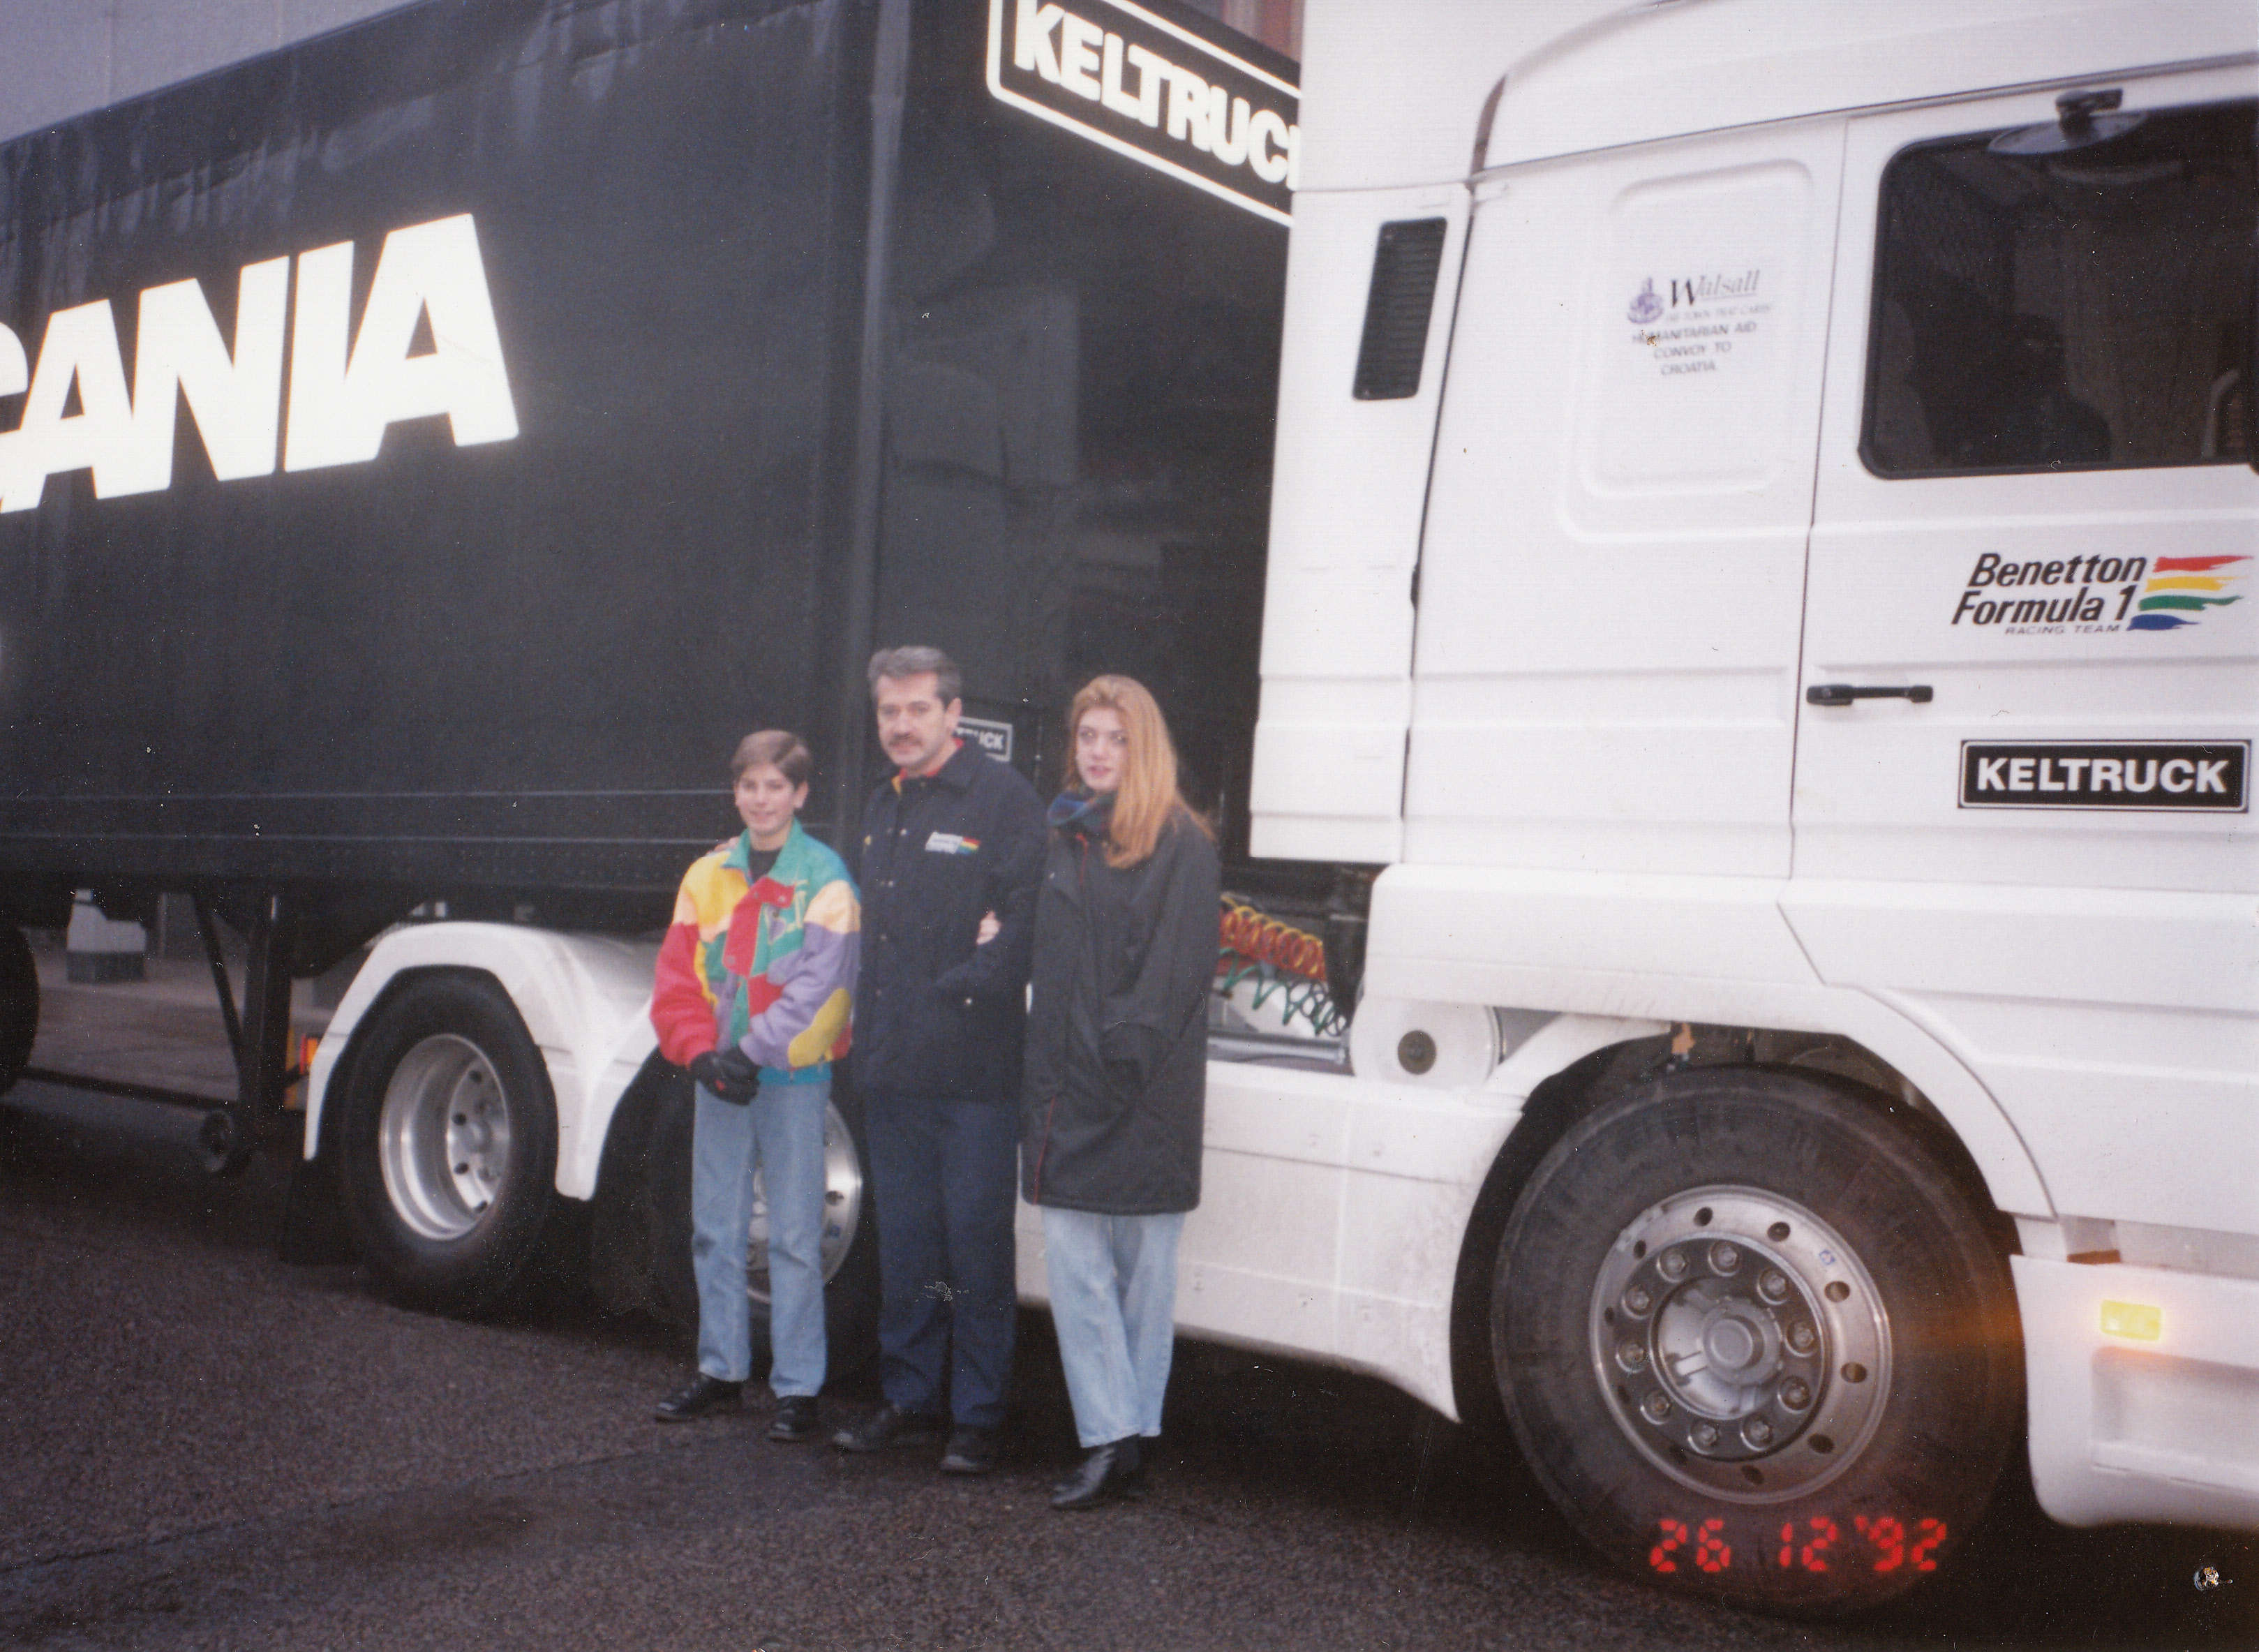 Keltruck supported the successful Benetton Formula 1 team. Here we see founder (then Managing Director & Dealer Principal), Chris Kelly and his children on Boxing Day in 1992 as one of the Benetton team F1 Scania Streamline vehicles leaves Keltruck's West Bromwich head office on a mercy mission hauling – in often sub-zero temperatures – emergency supplies to ill-equipped orphanages in the former 'Soviet bloc' as several eastern European countries collapsed into chaos following the bringing down of the Berlin Wall and the ending of the division of the continent of Europe. Chris was at the wheel all the way there & back.